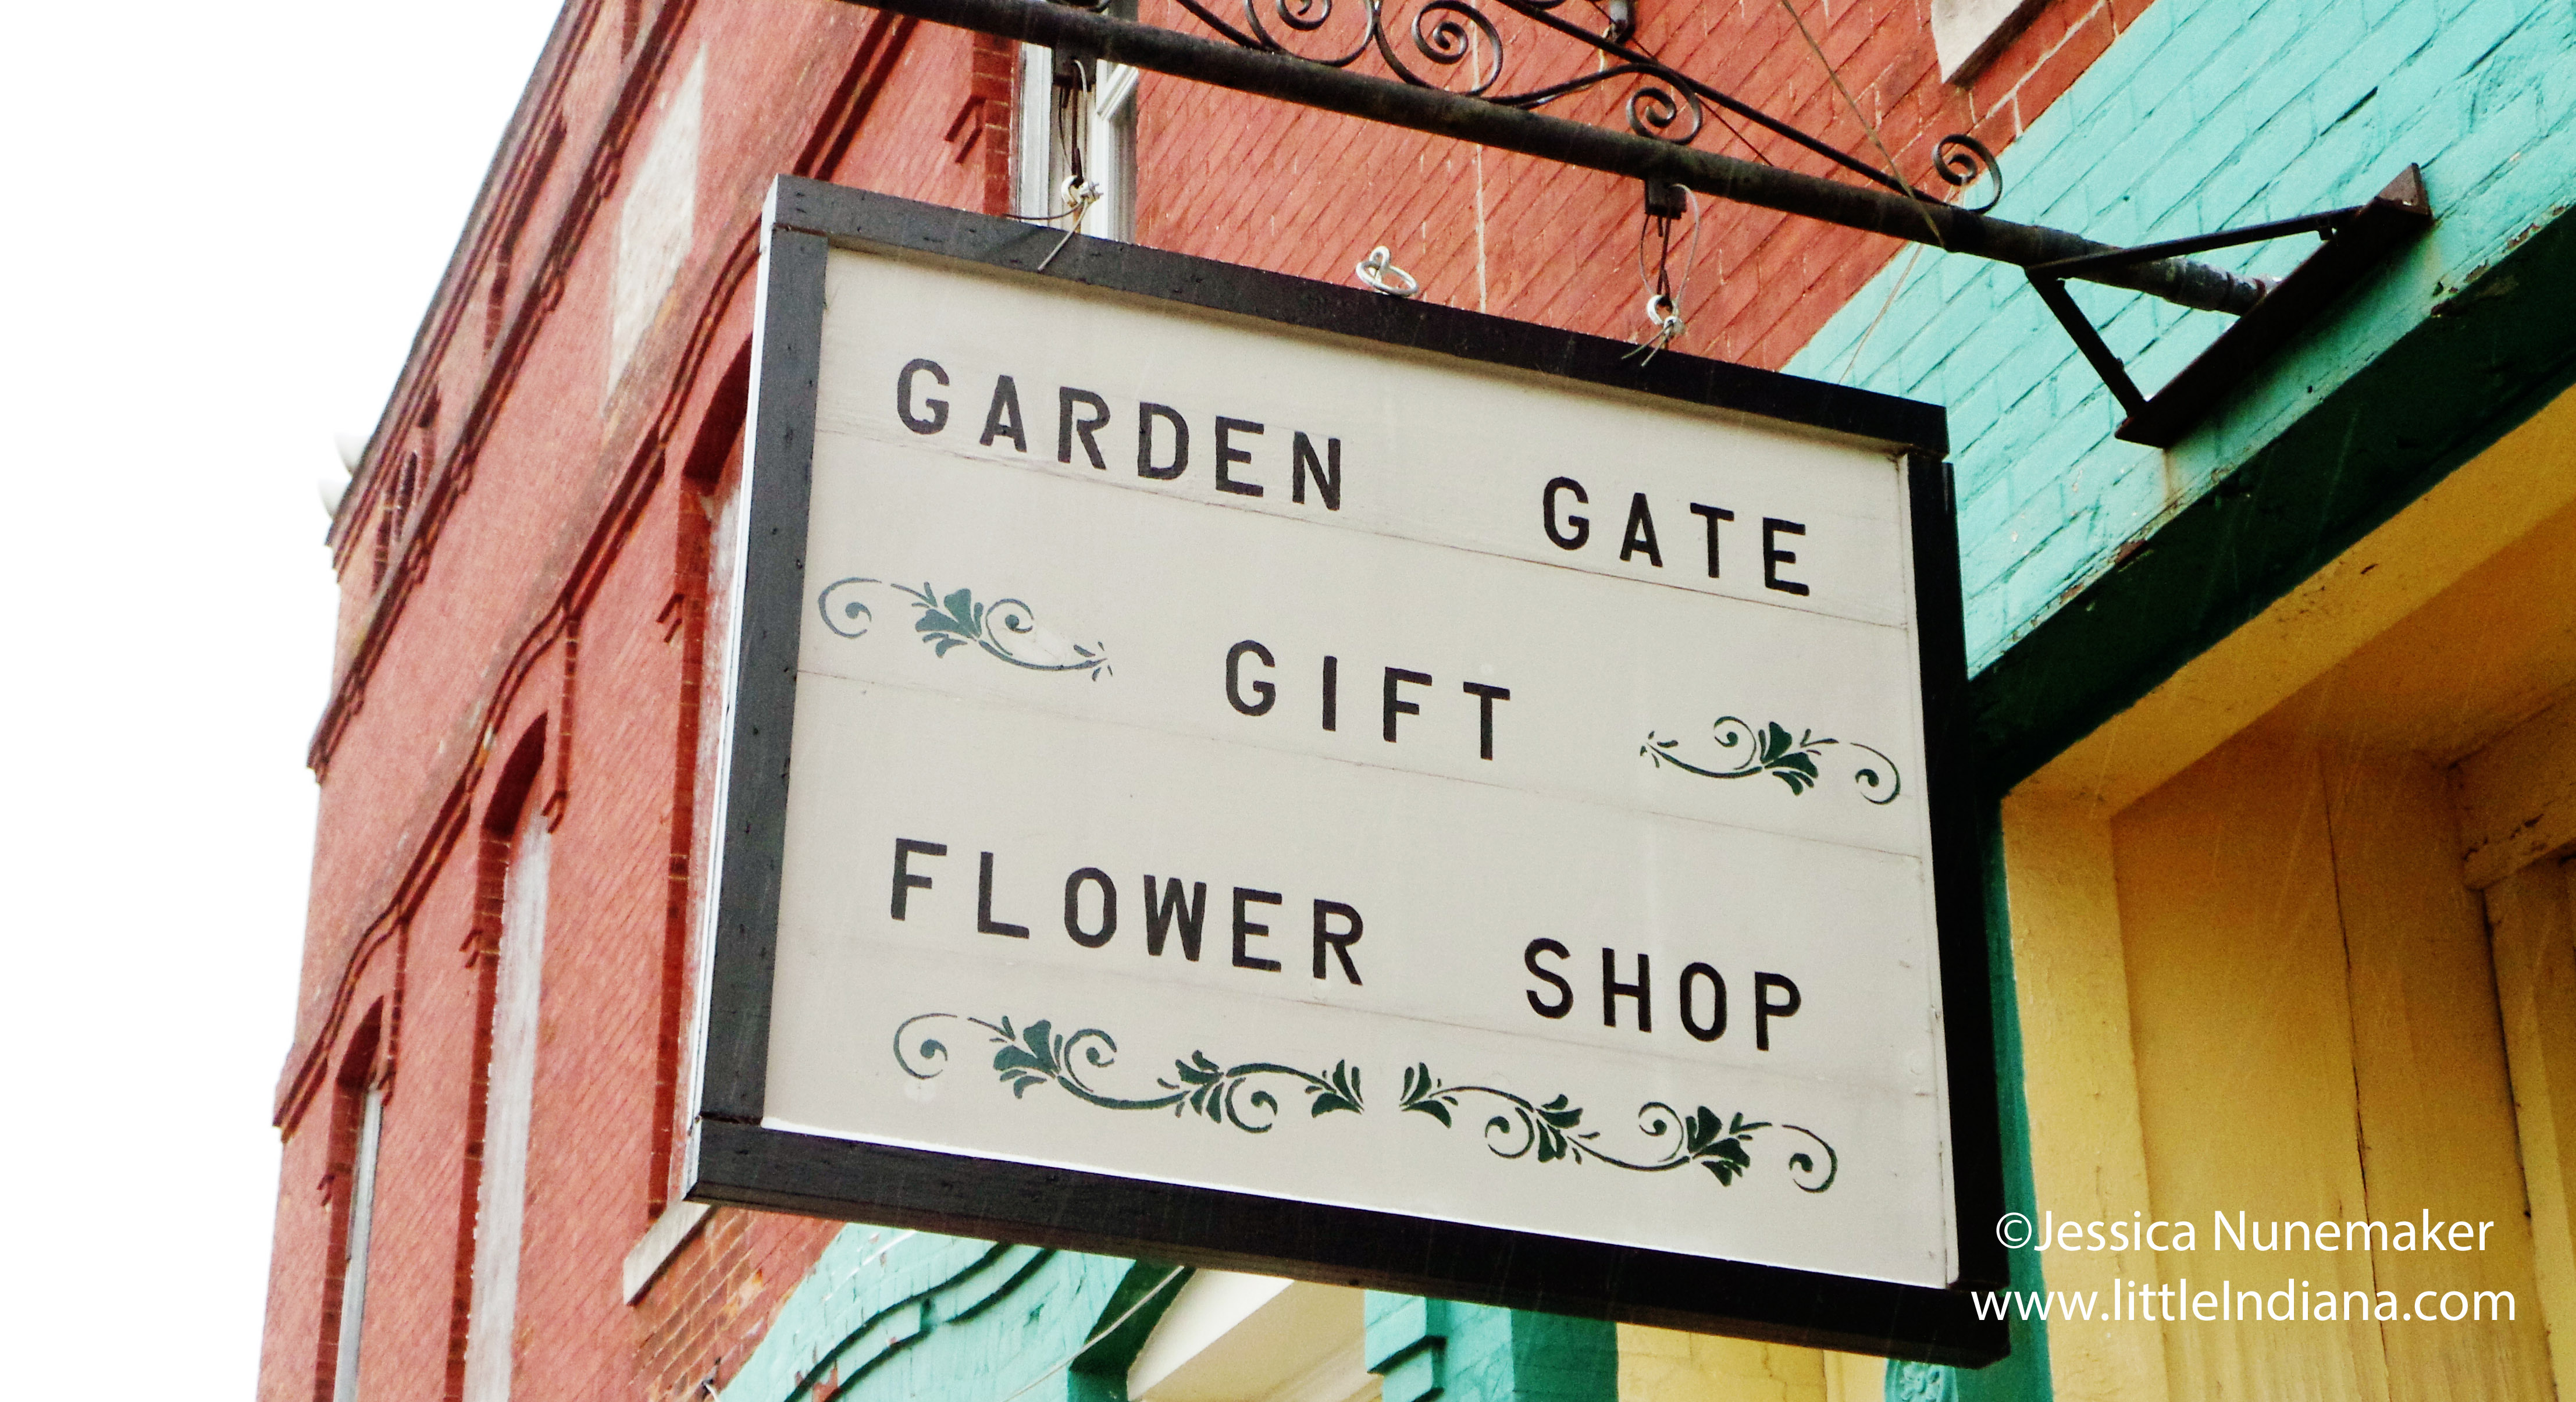 Garden Gate Gifts and Flowers in North Salem, Indiana